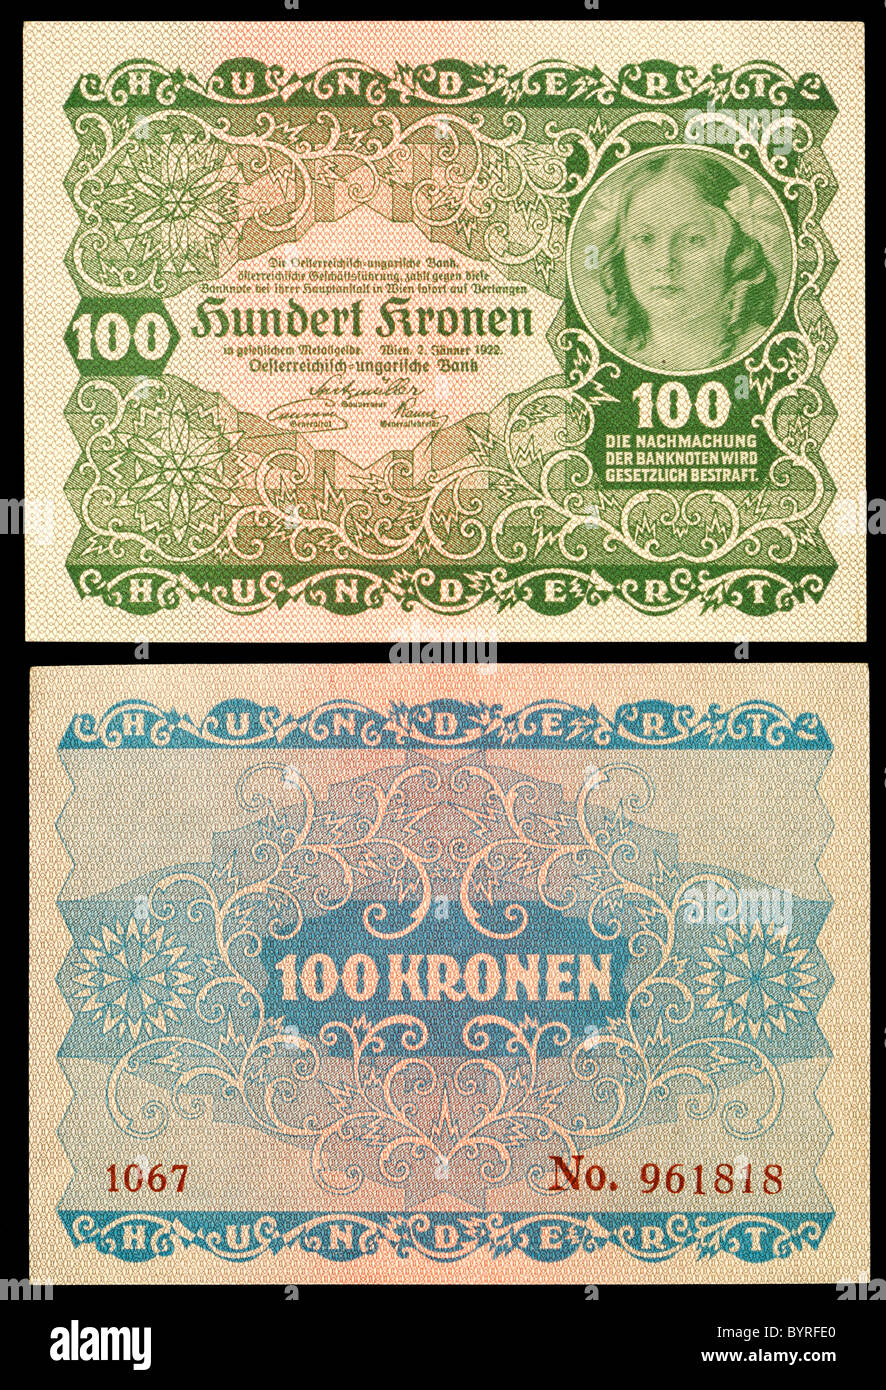 Austro-Hungarian 100 Kronen / Crown note from 1922 - Stock Image